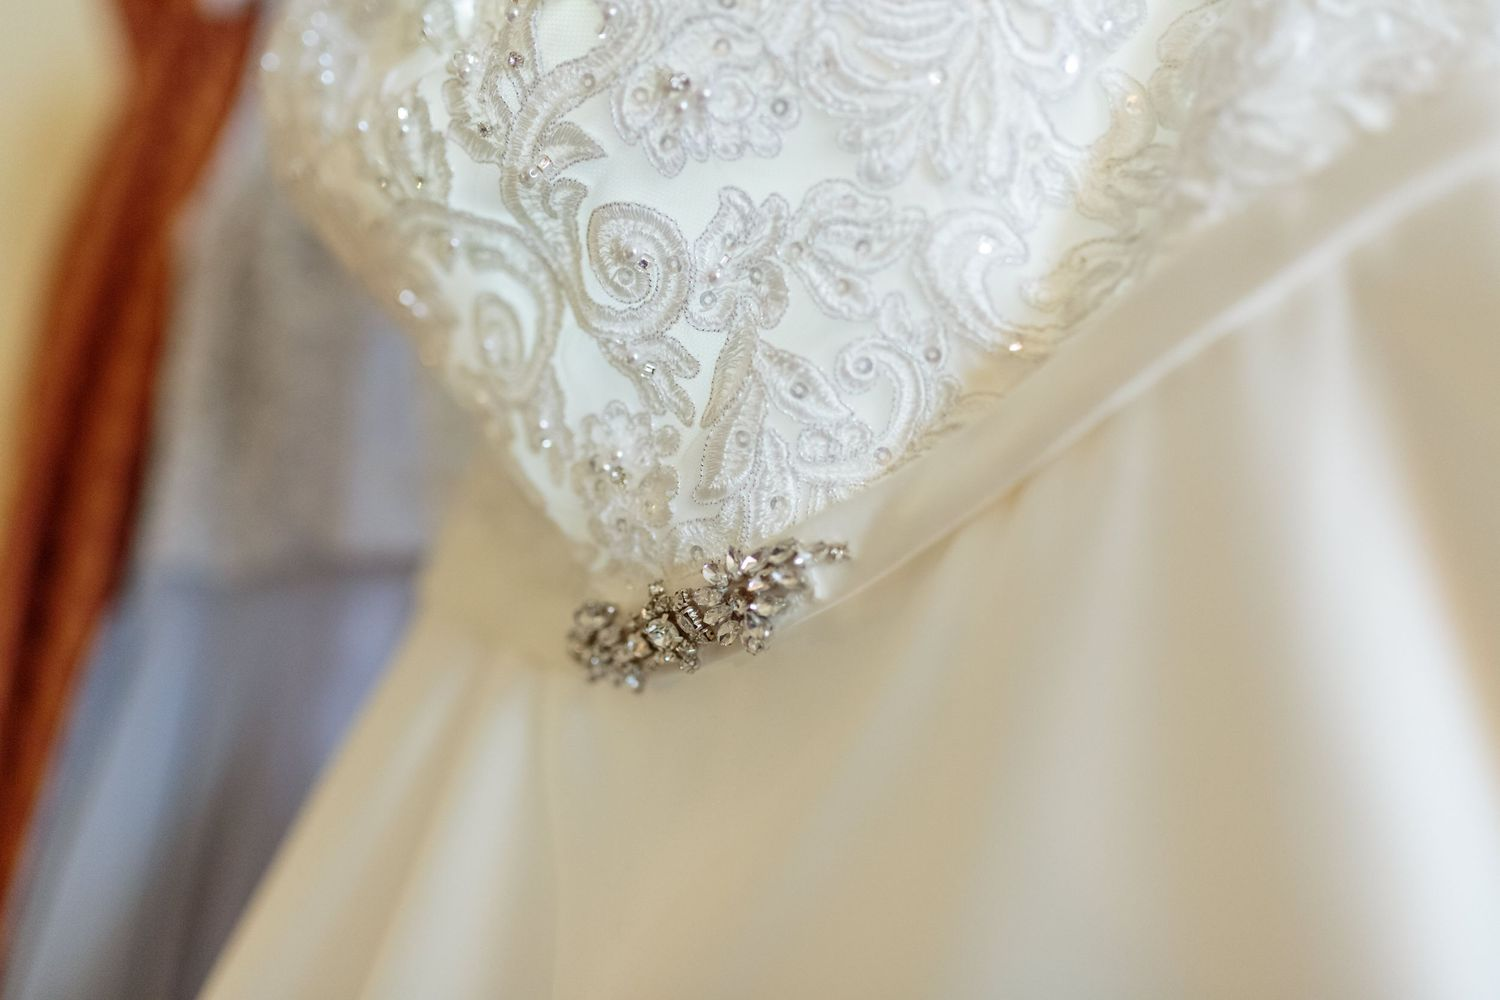 close up of the lace and detail on the wedding dress